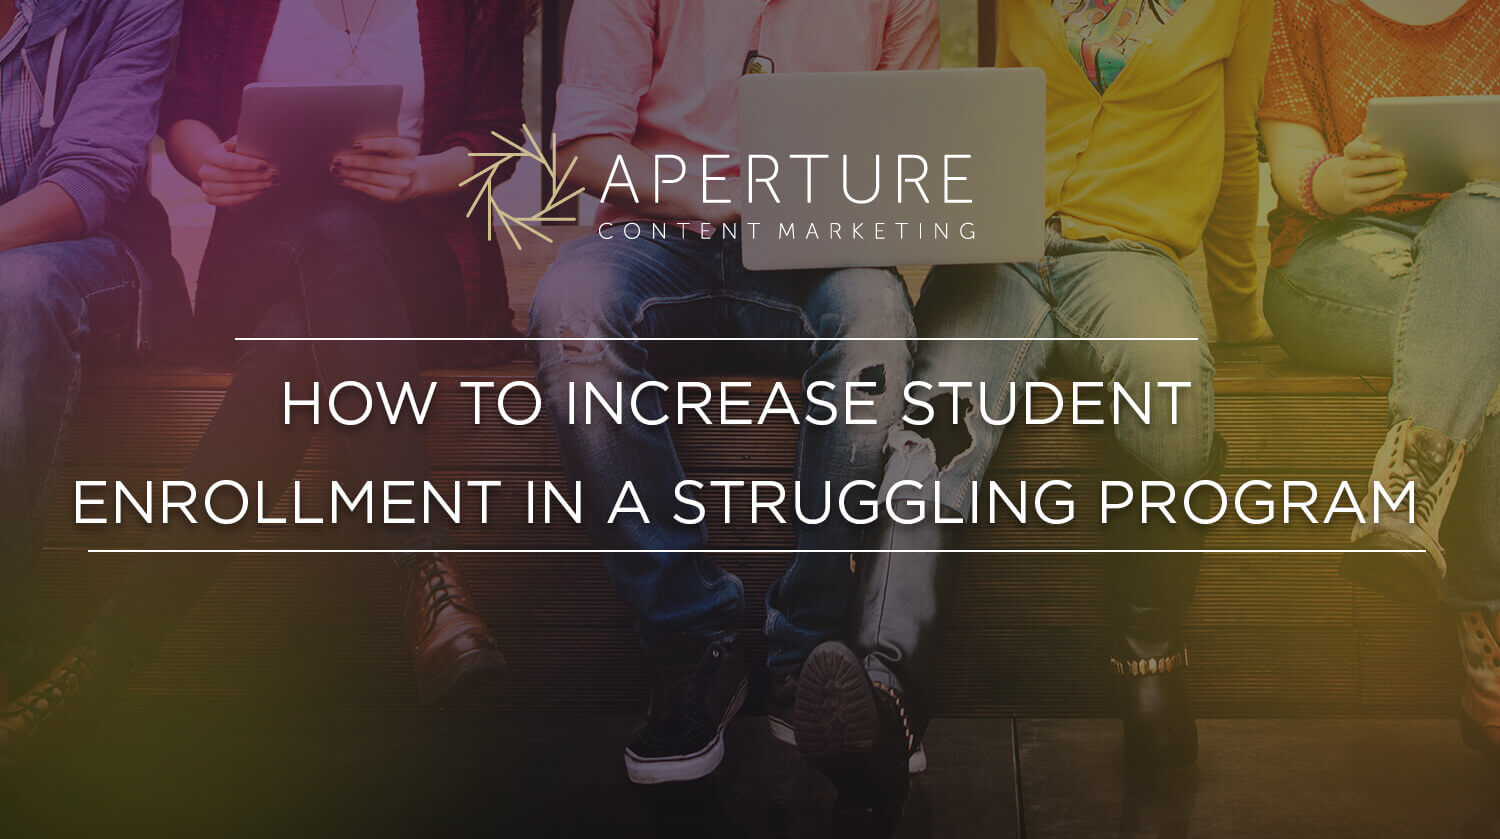 How to Increase Student Enrollment in a Struggling Program